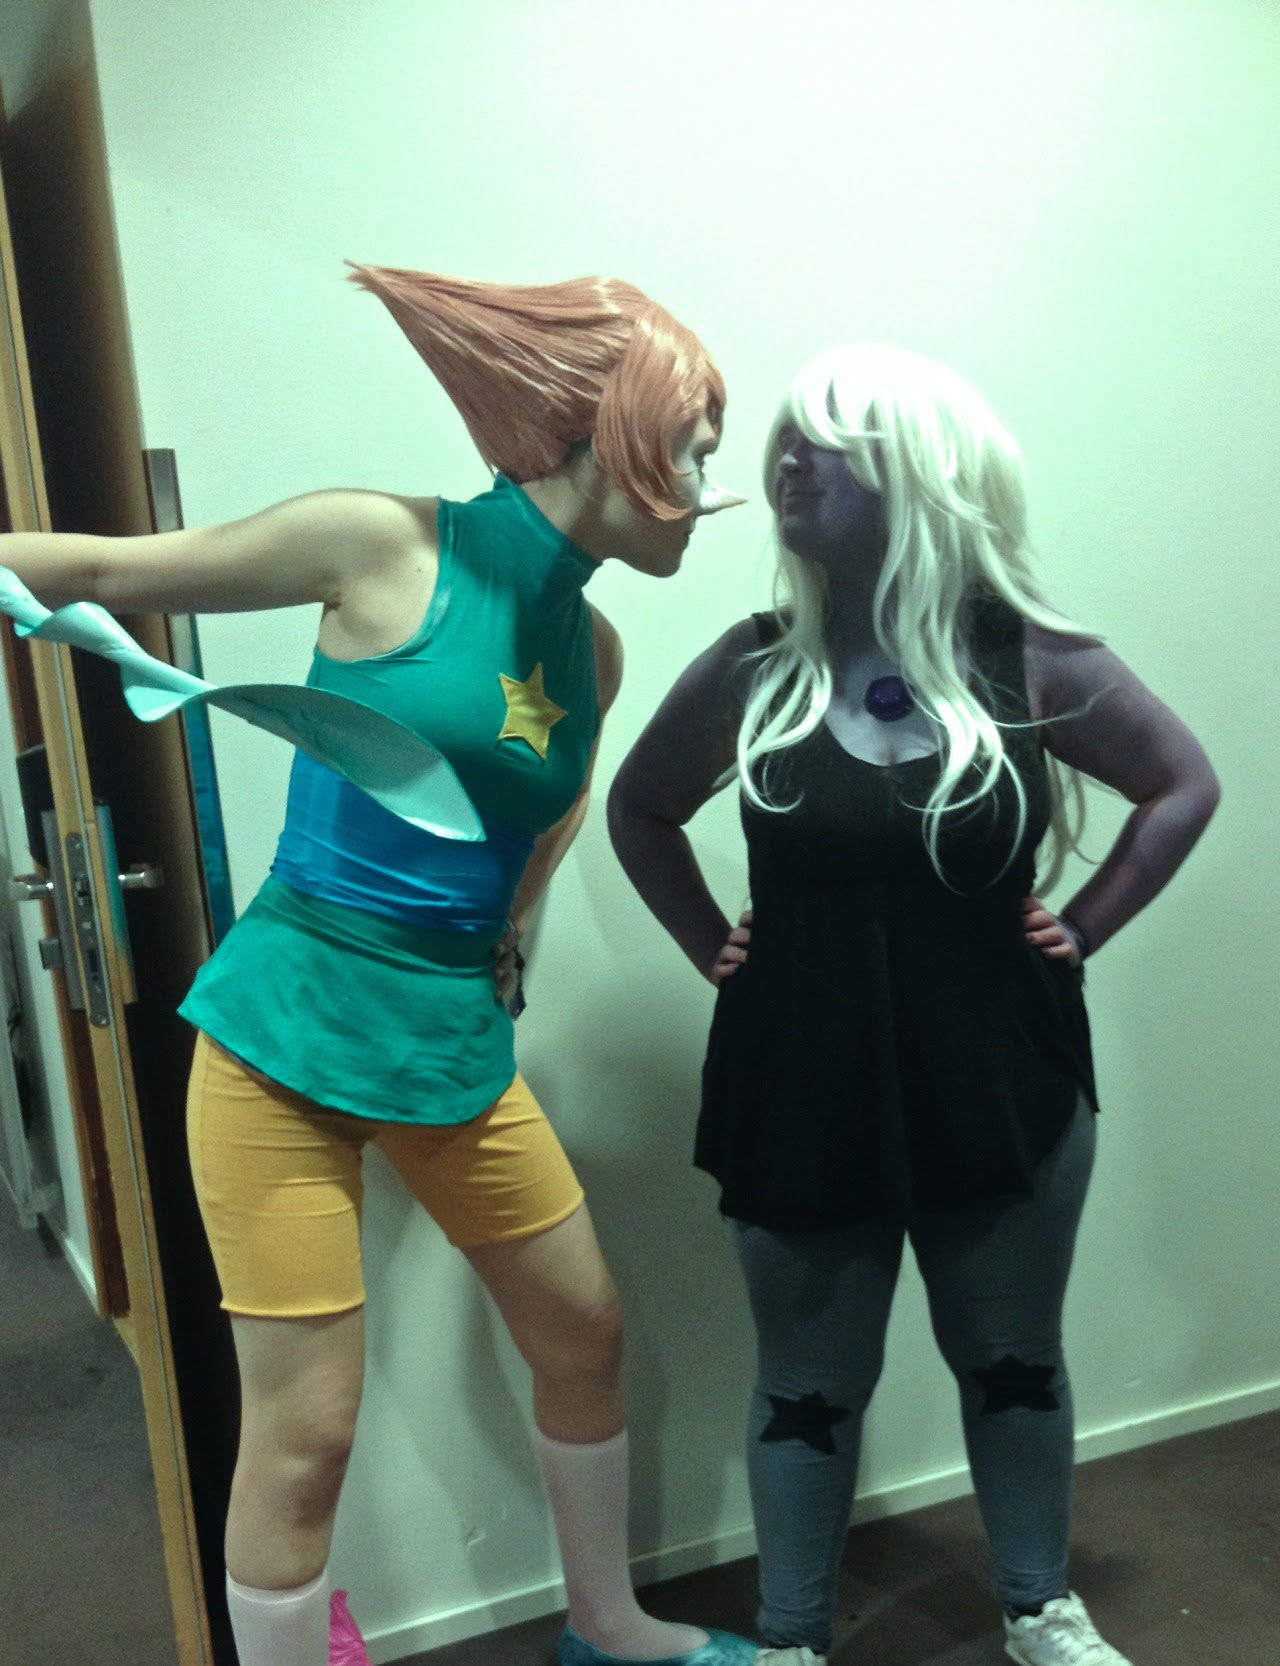 STEVEN UNIVERSE GROUP COSPLAY AT YUKICON 2016 - FINLAND - Photo set 2Pearl - ME (Day one: I had body paint with the cosplay, Day two: no body paint but a nose made of nose wax with the cosplay....